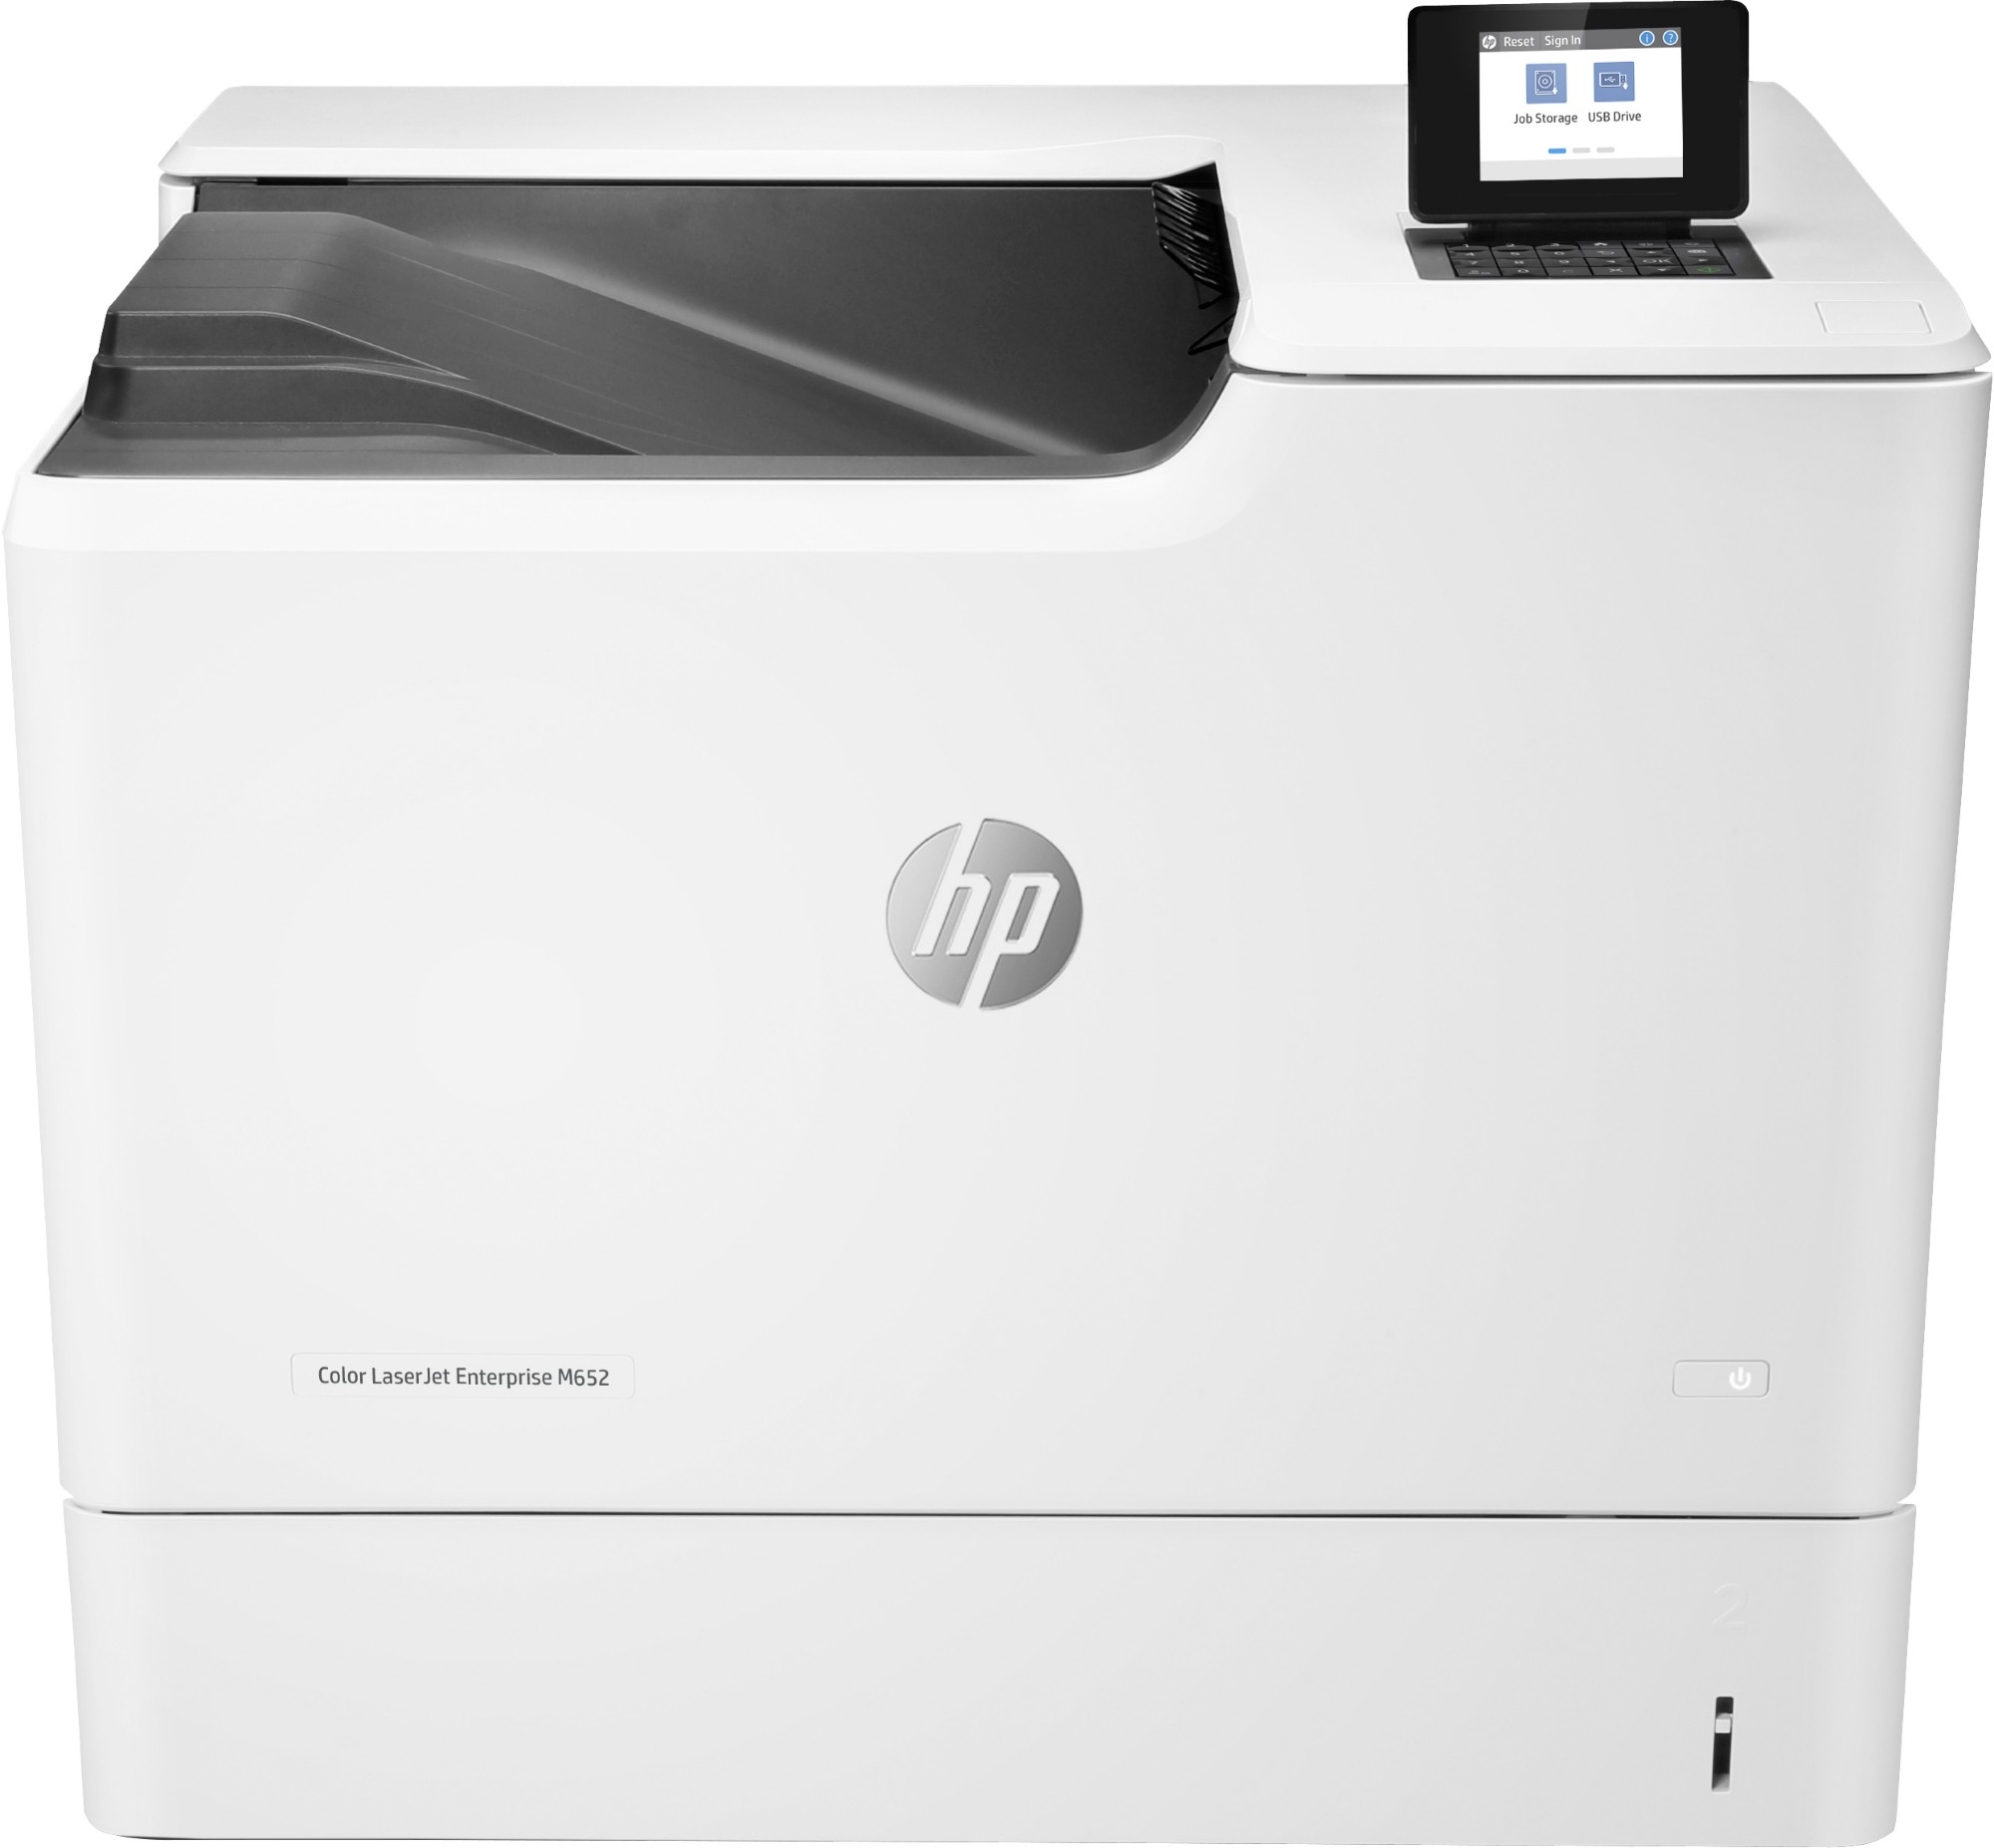 HP J7Z99A#B19 LASERJET ENTERPRISE M652DN COLOUR 1200 X 1200DPI A4 WI-FI